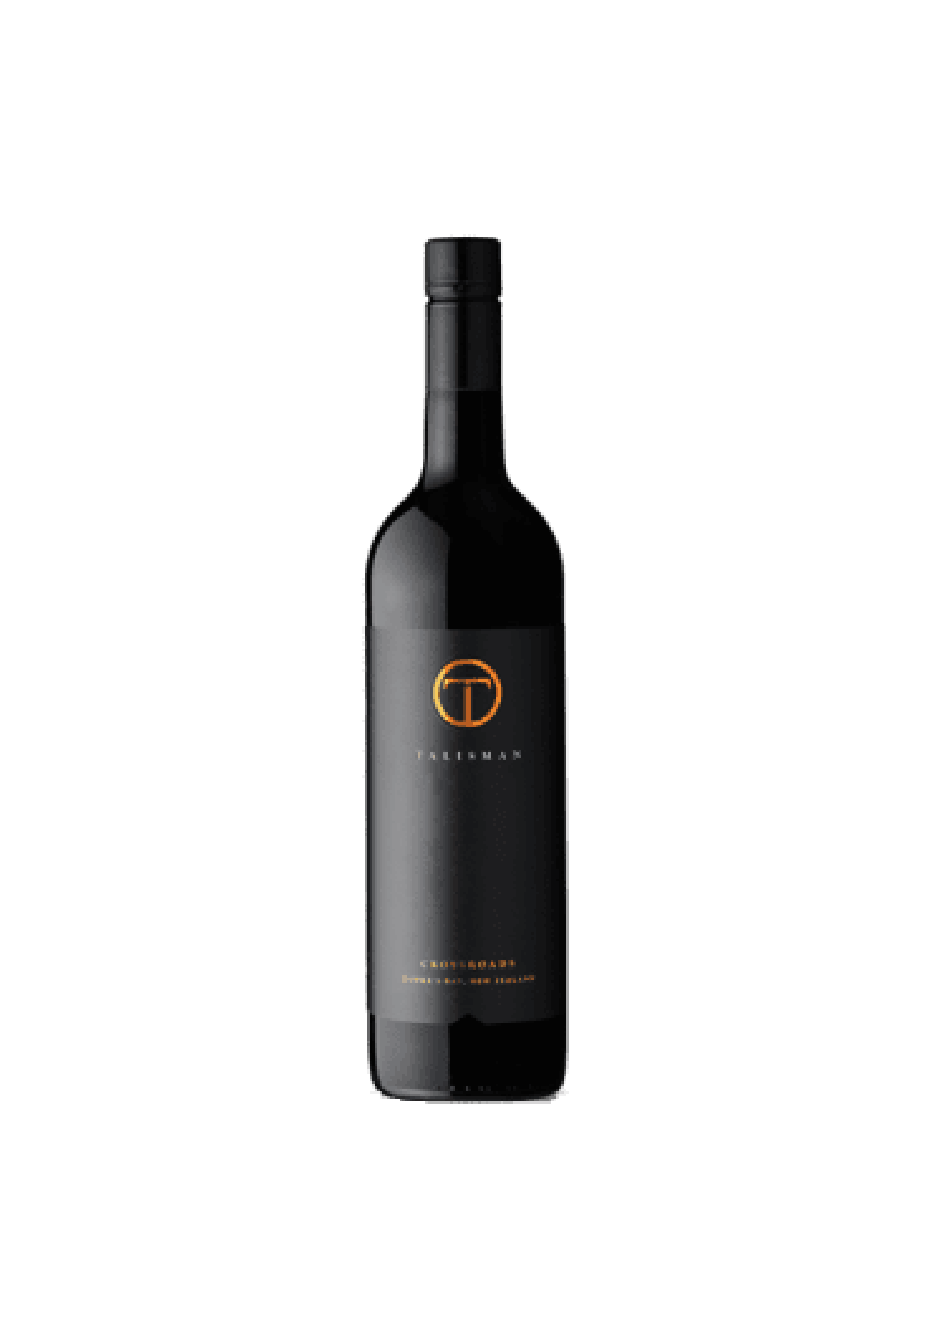 Crossroads Hawkes Bay 'The Talisman' 2015